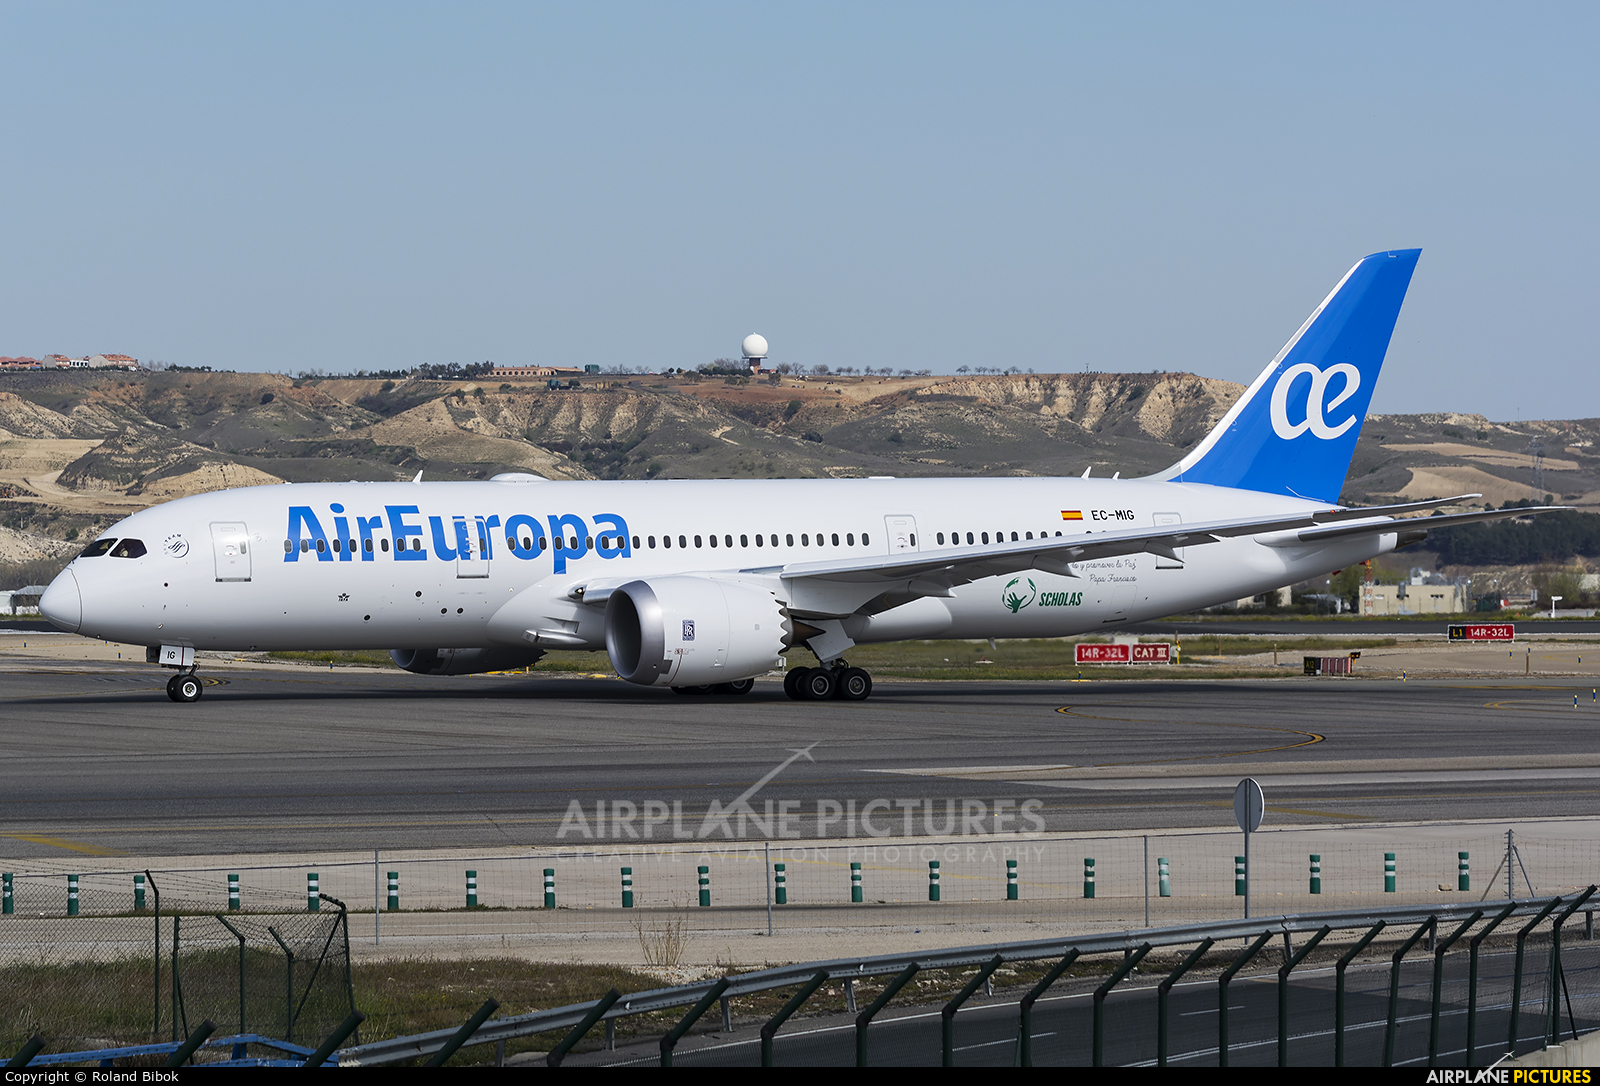 Ec mig air europa boeing 787 8 dreamliner at madrid for Interior 787 air europa